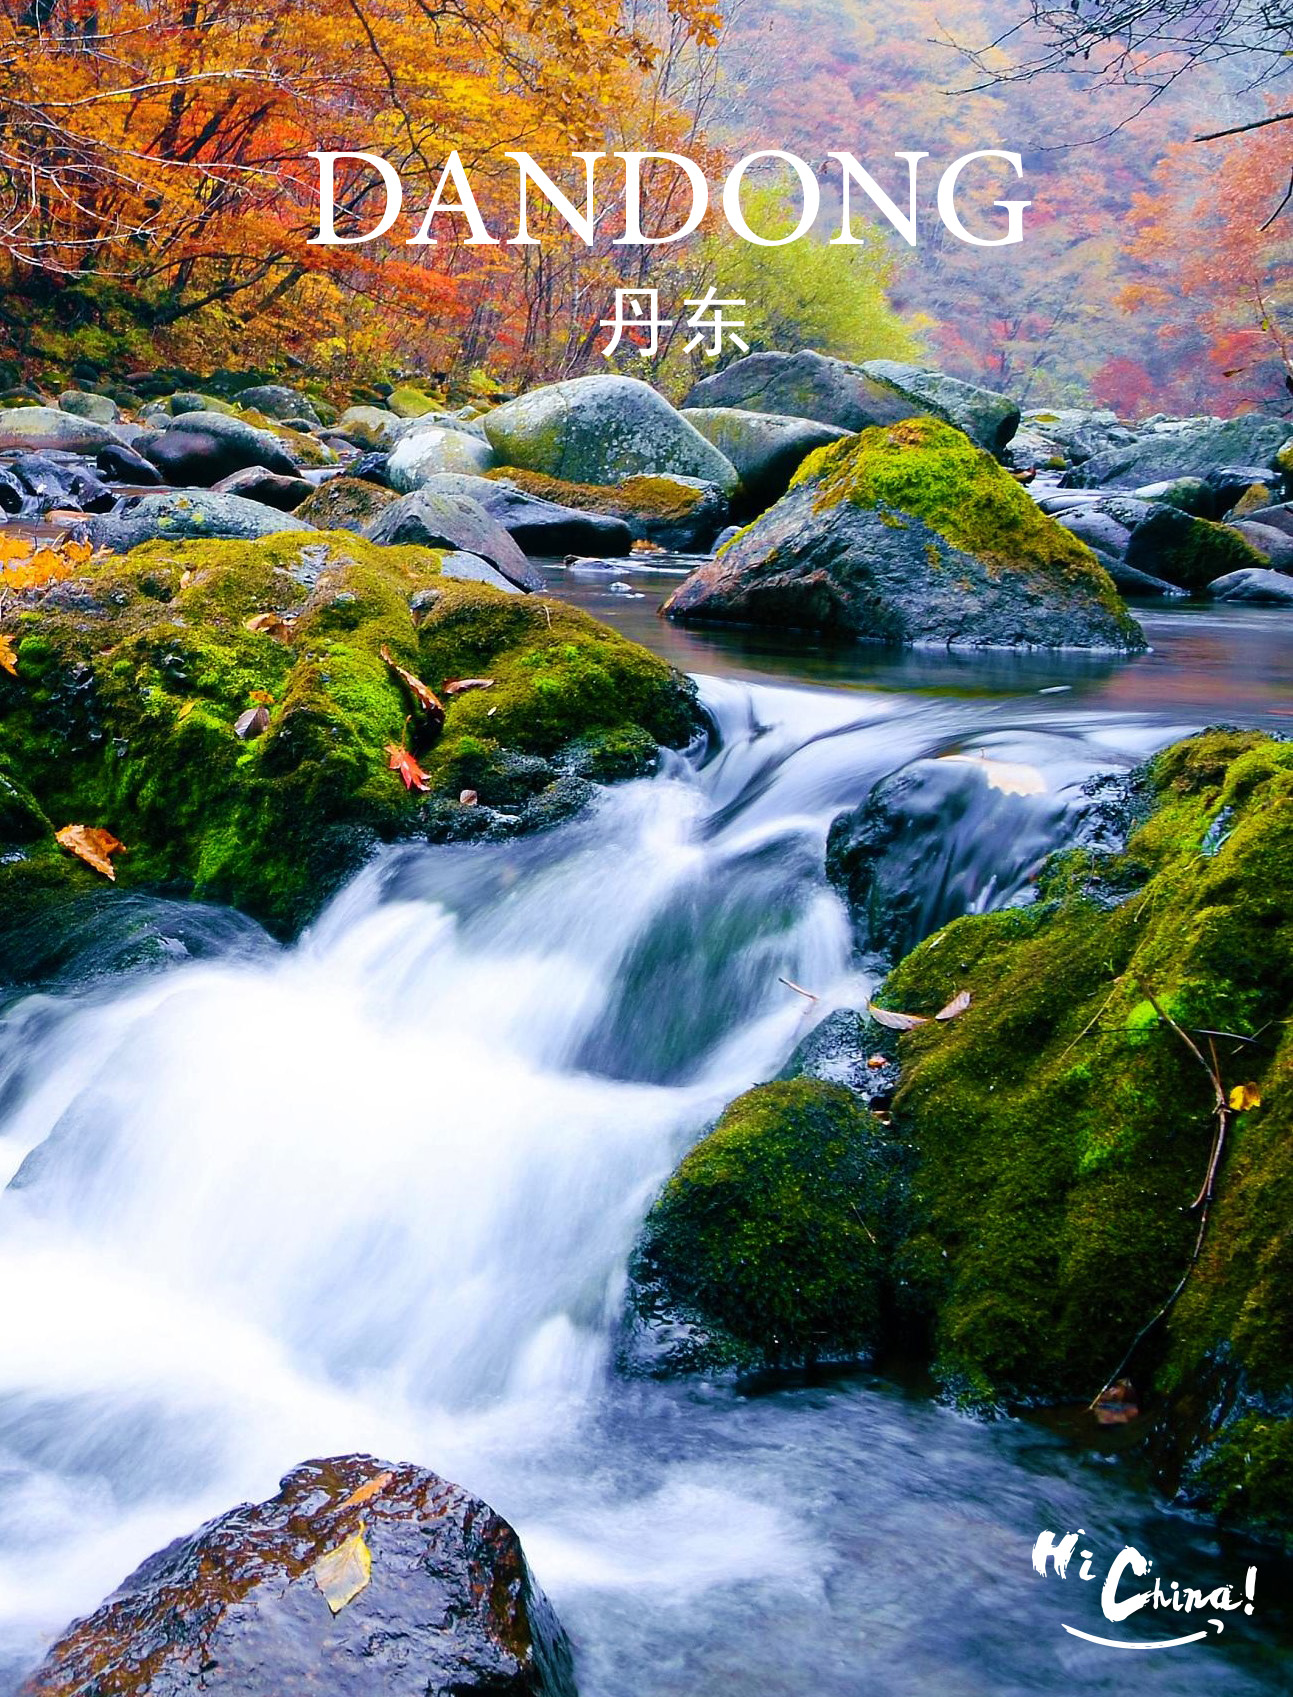 Dandong Guidebook